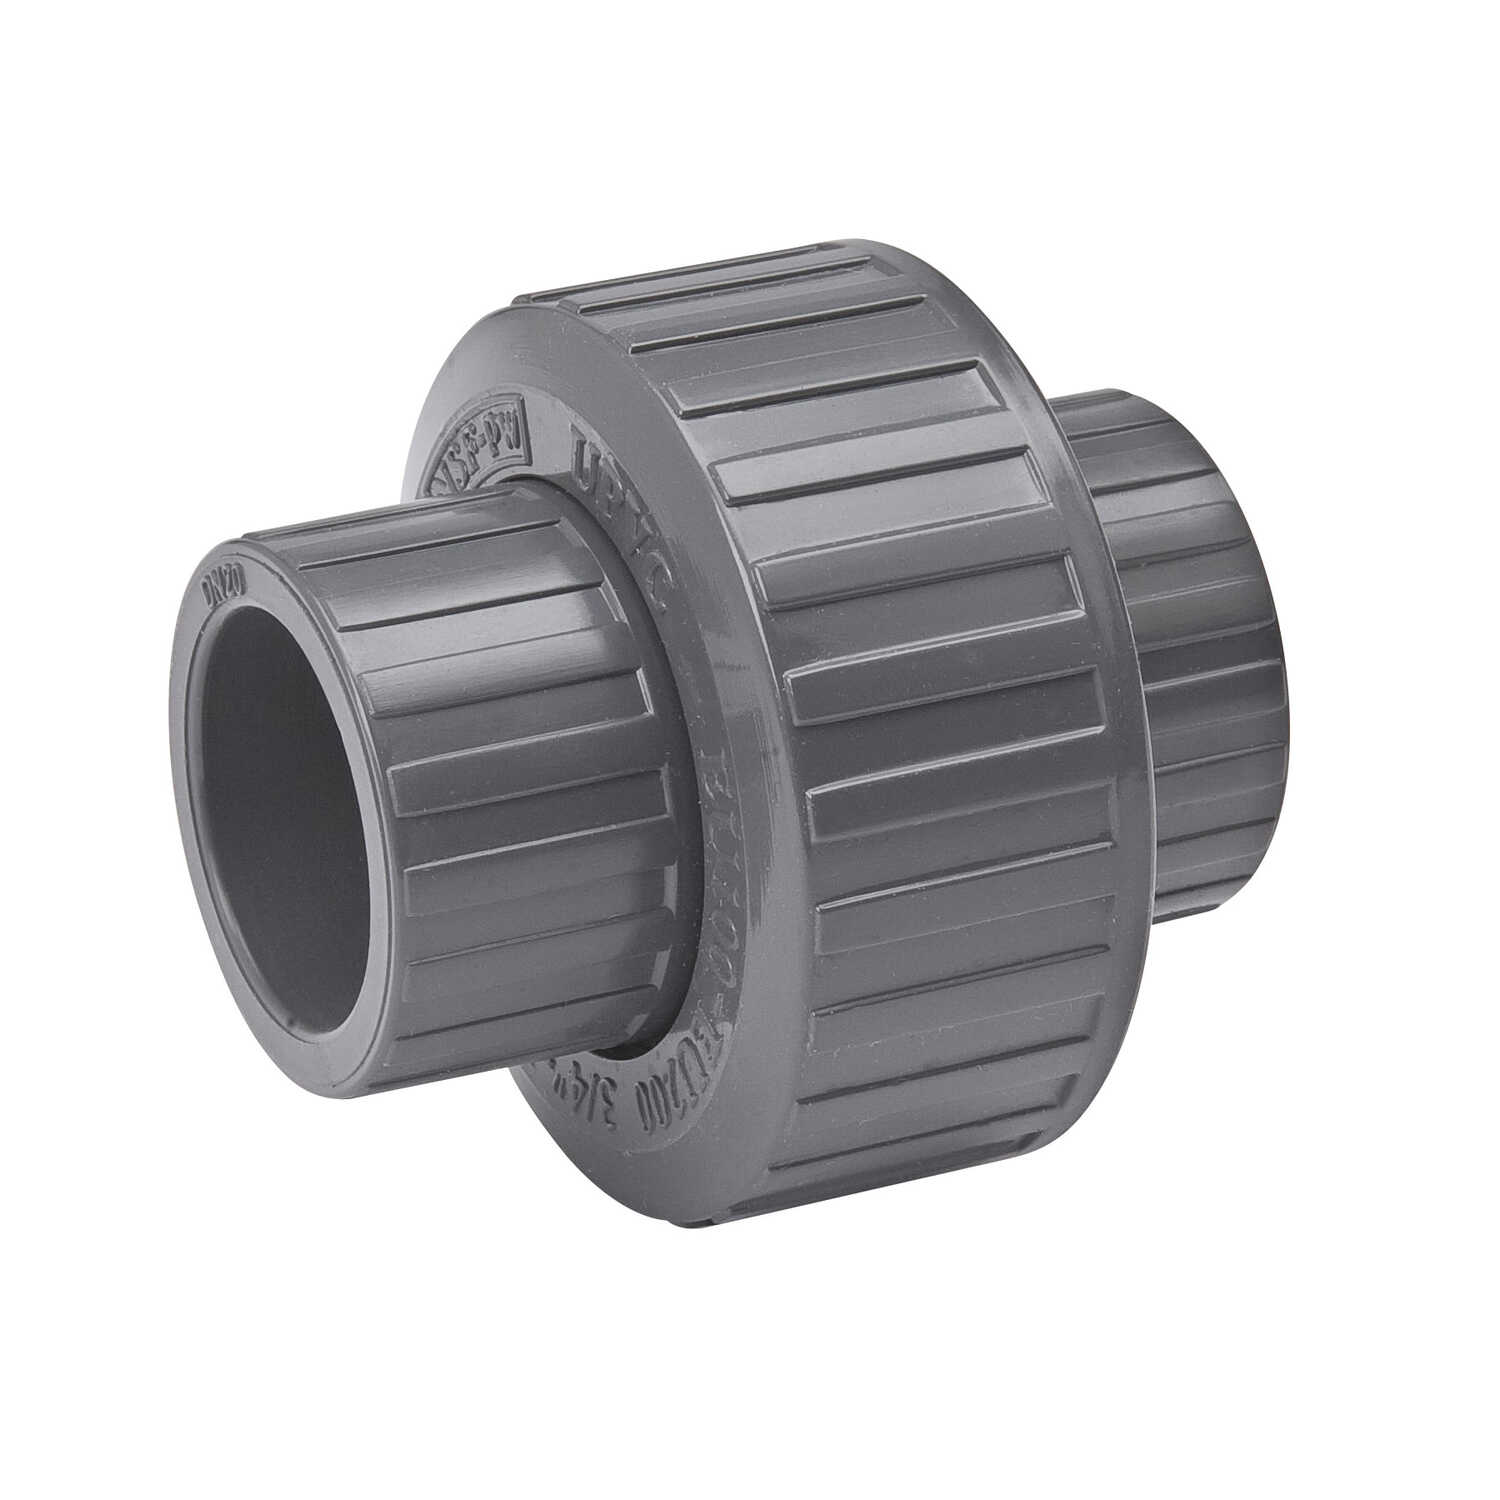 BK Products  ProLine  Schedule 80  1-1/4 in. FPT   x 1-1/4 in. Dia. Threaded  PVC  Union